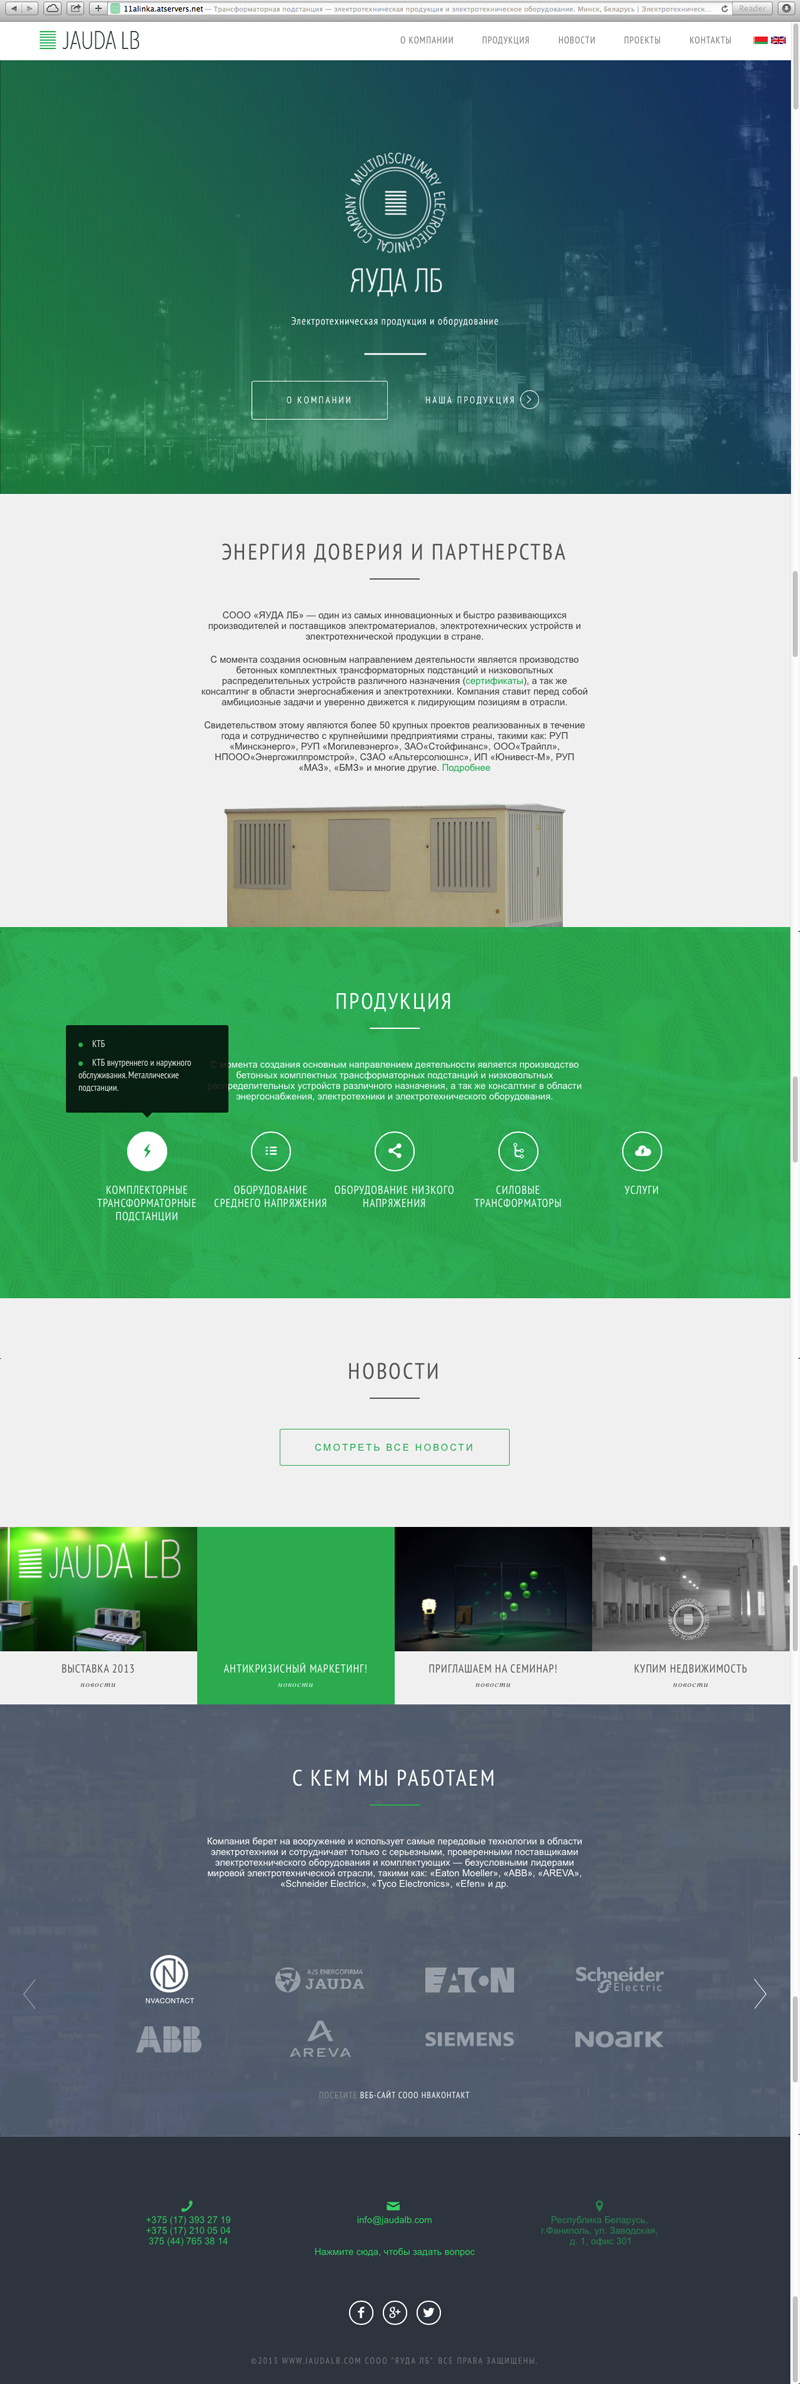 website-development-jauda